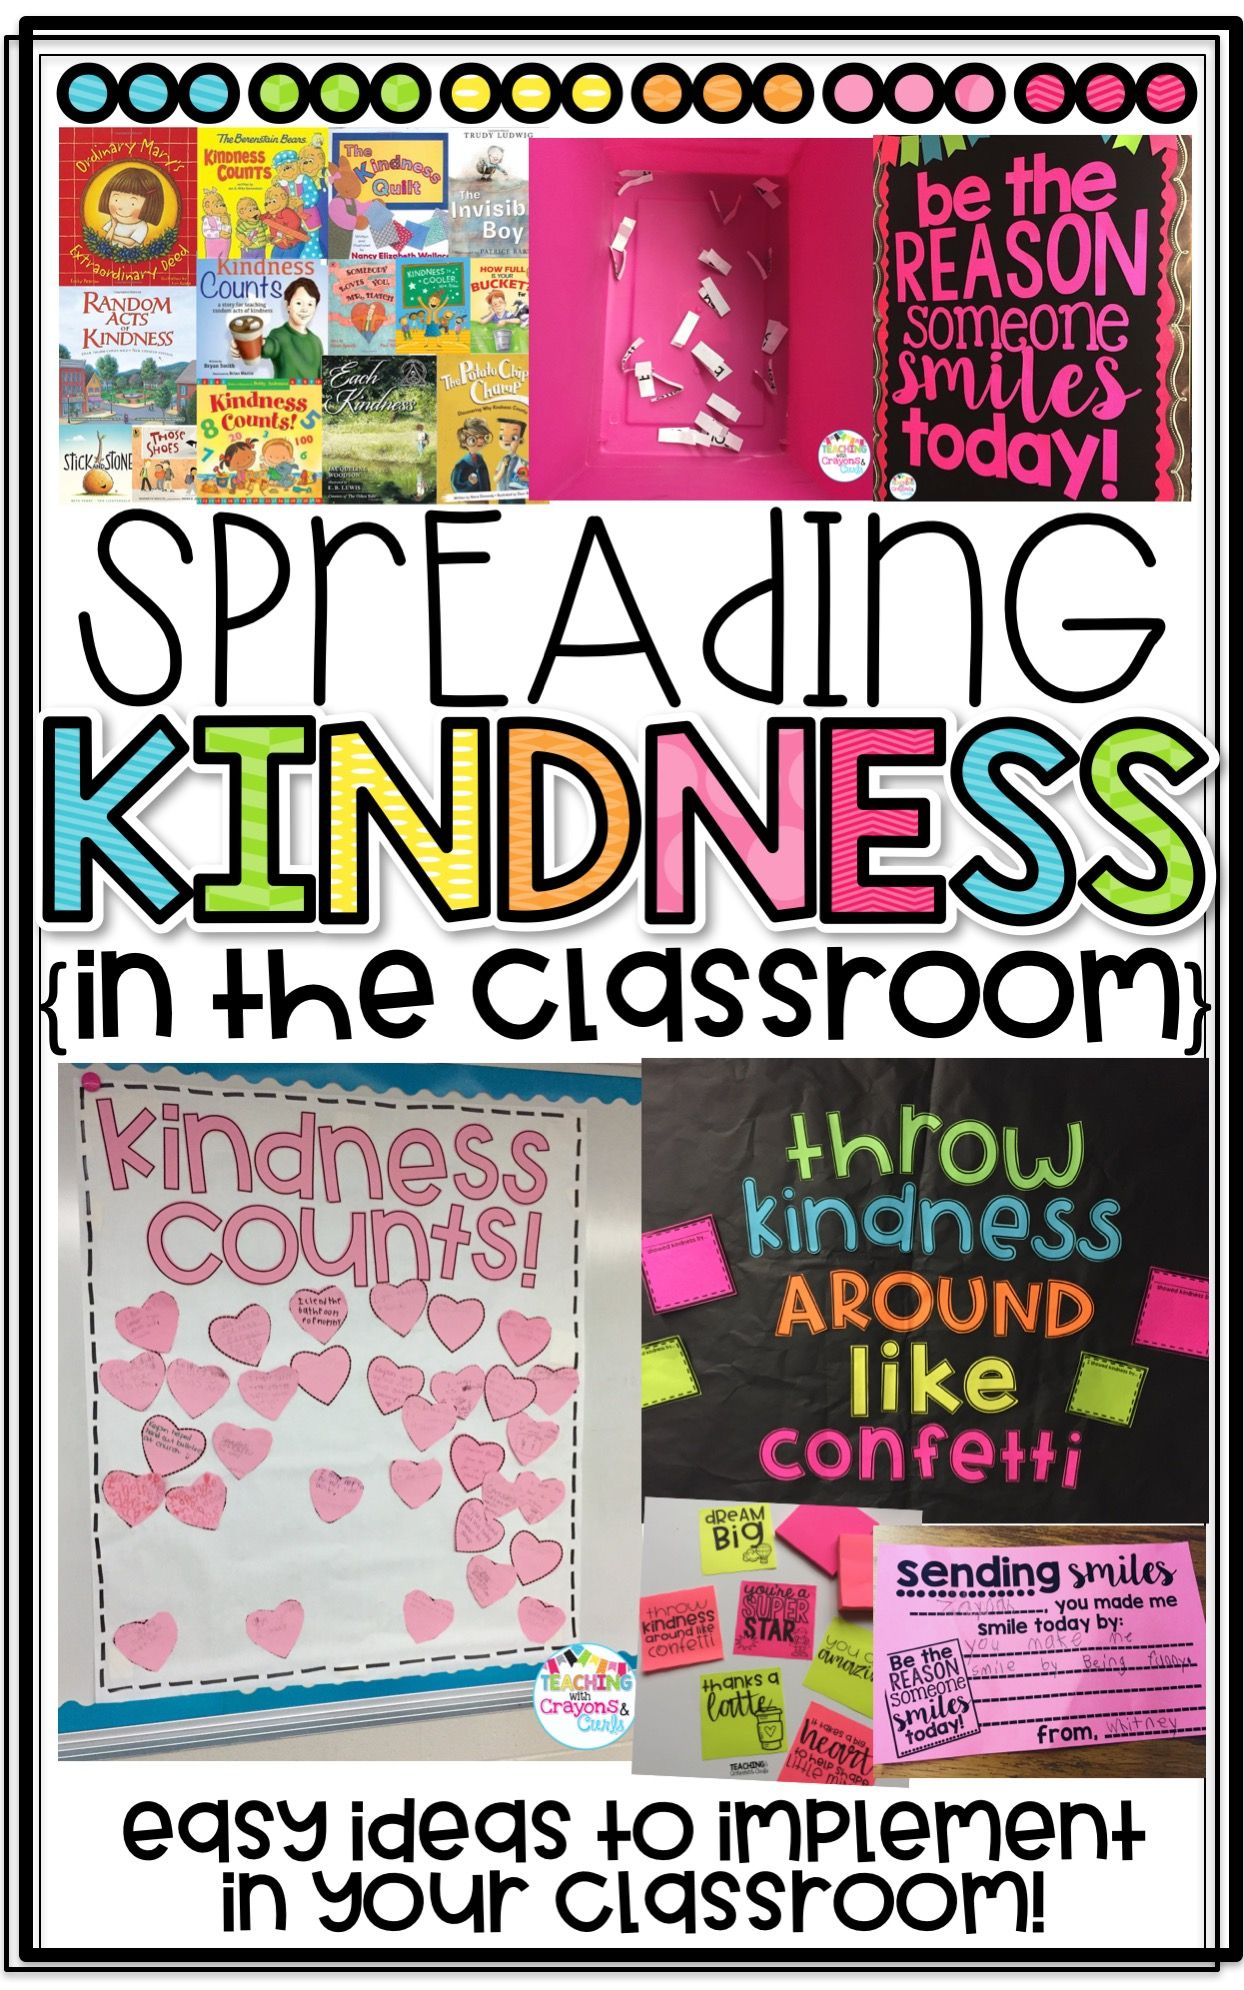 Spreading Kindness In The Classroom